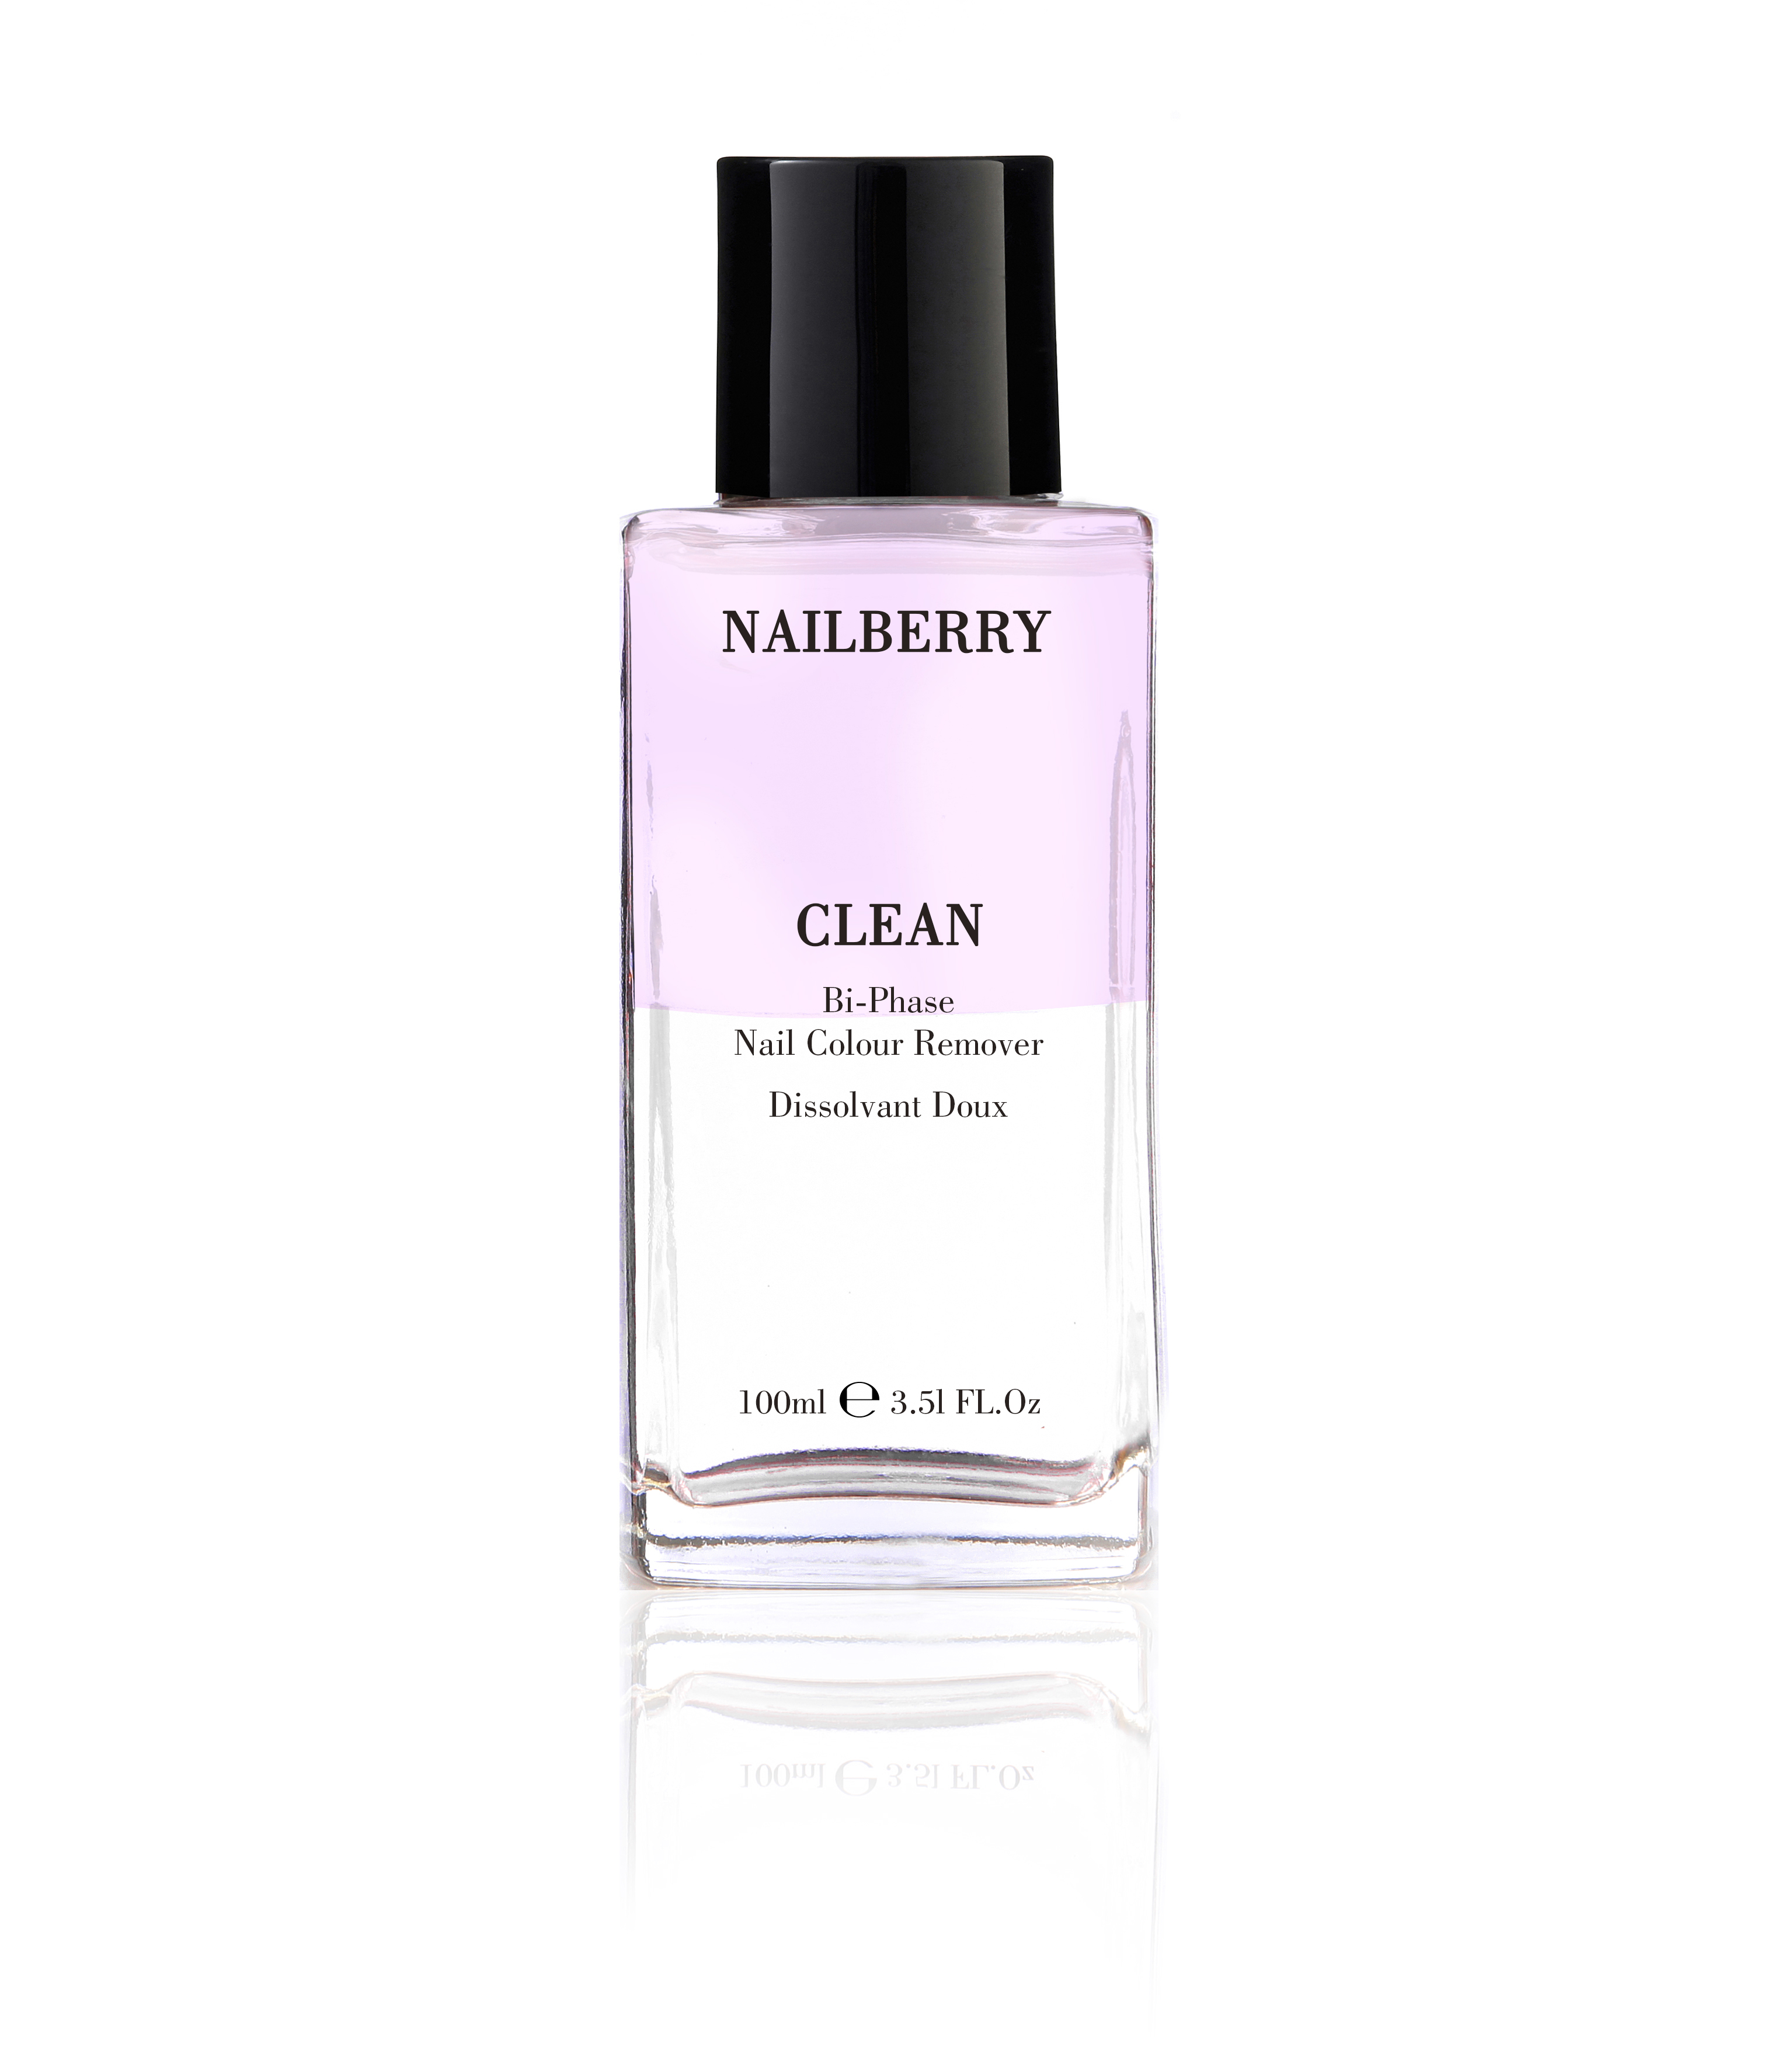 Nailberry Clean Nail Colour Remover, 100 ml